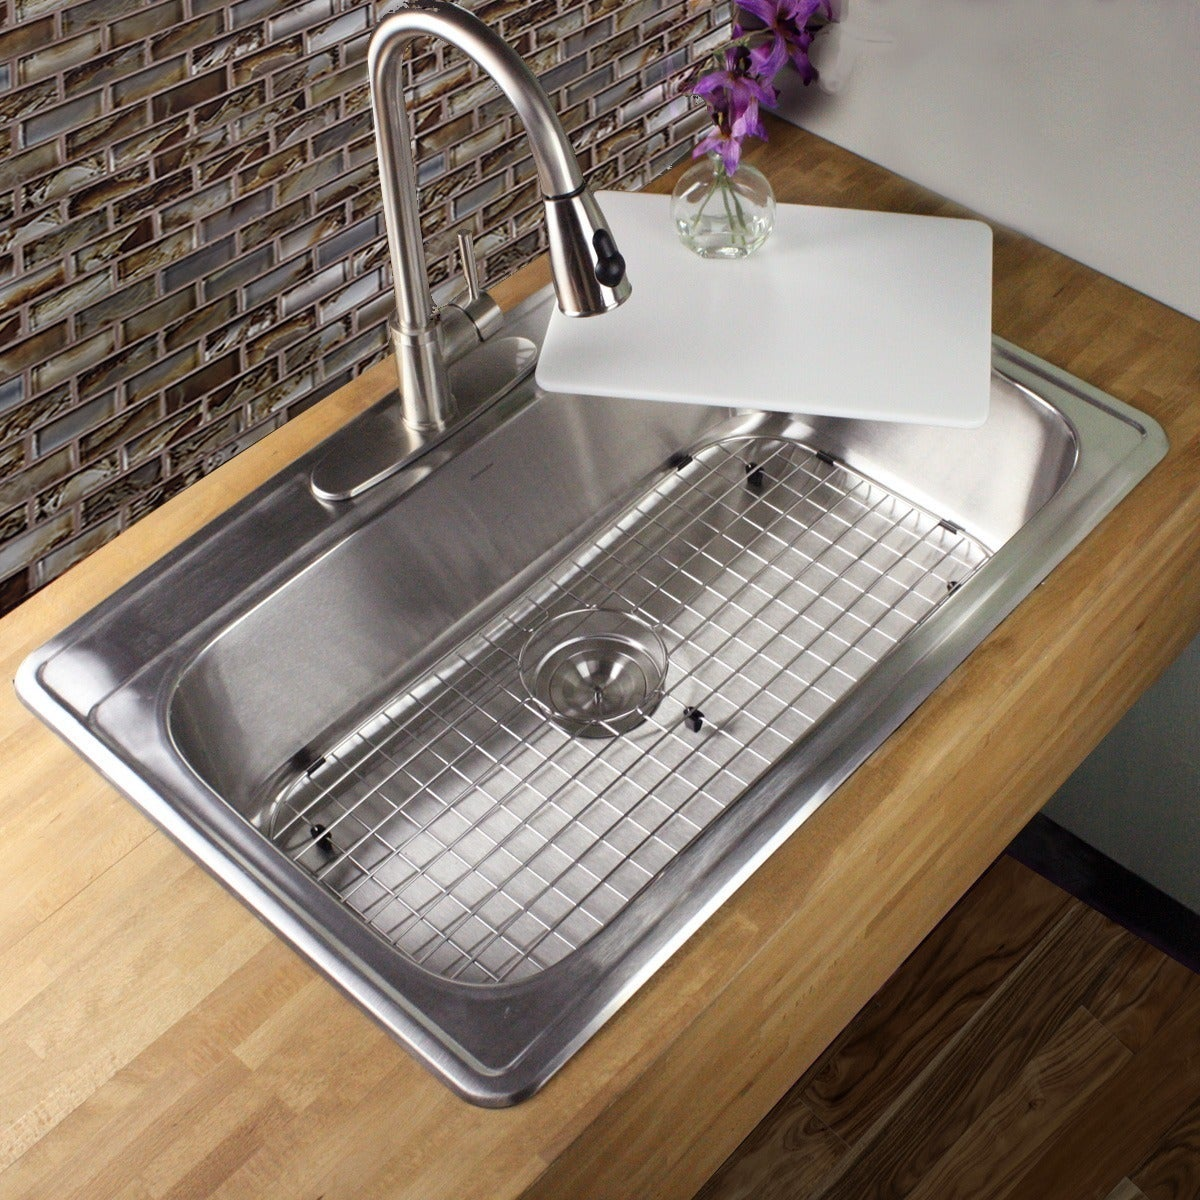 Shop 33 Inch 18 Gauge Stainless Steel Drop In Single Bowl Kitchen Sink With Cutting Board Drain And Grid Silver On Sale Overstock 9202732